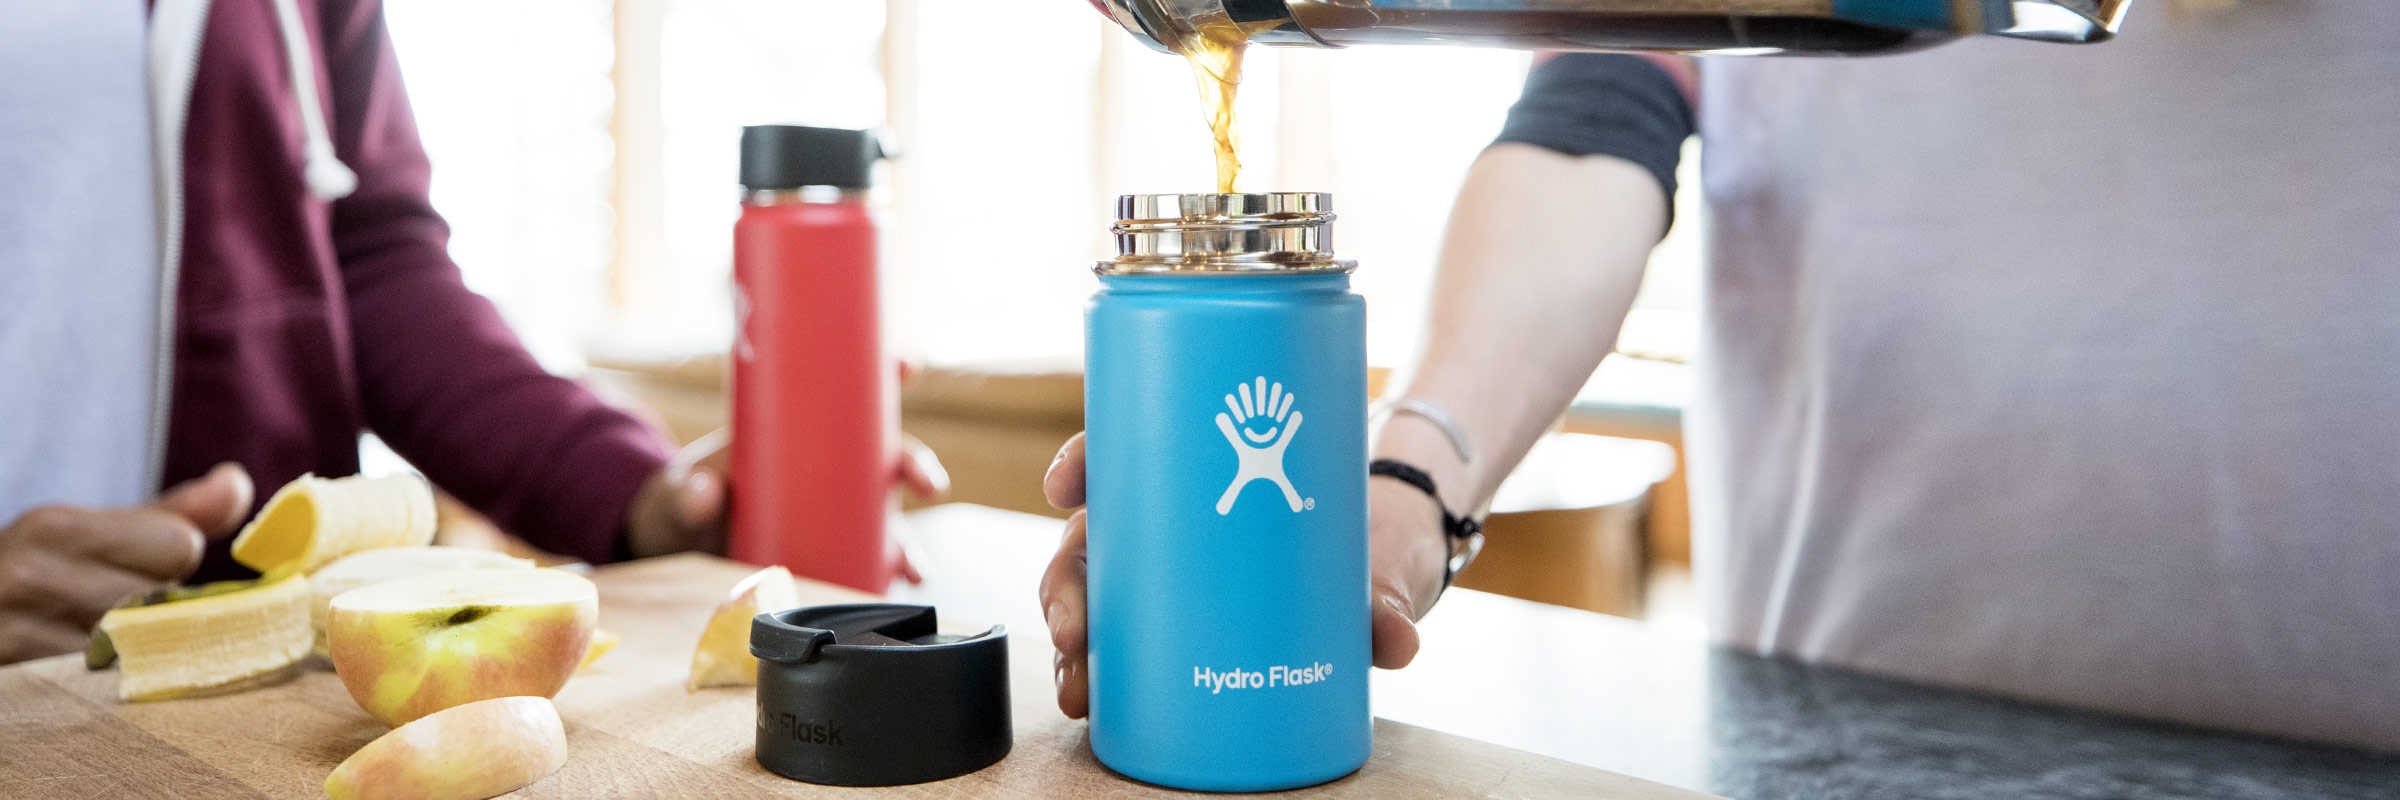 GSI outdoors, hydro flask, Mizu, Stanley, YETI. 5 Thermoses to Keep Your Coffee Hot